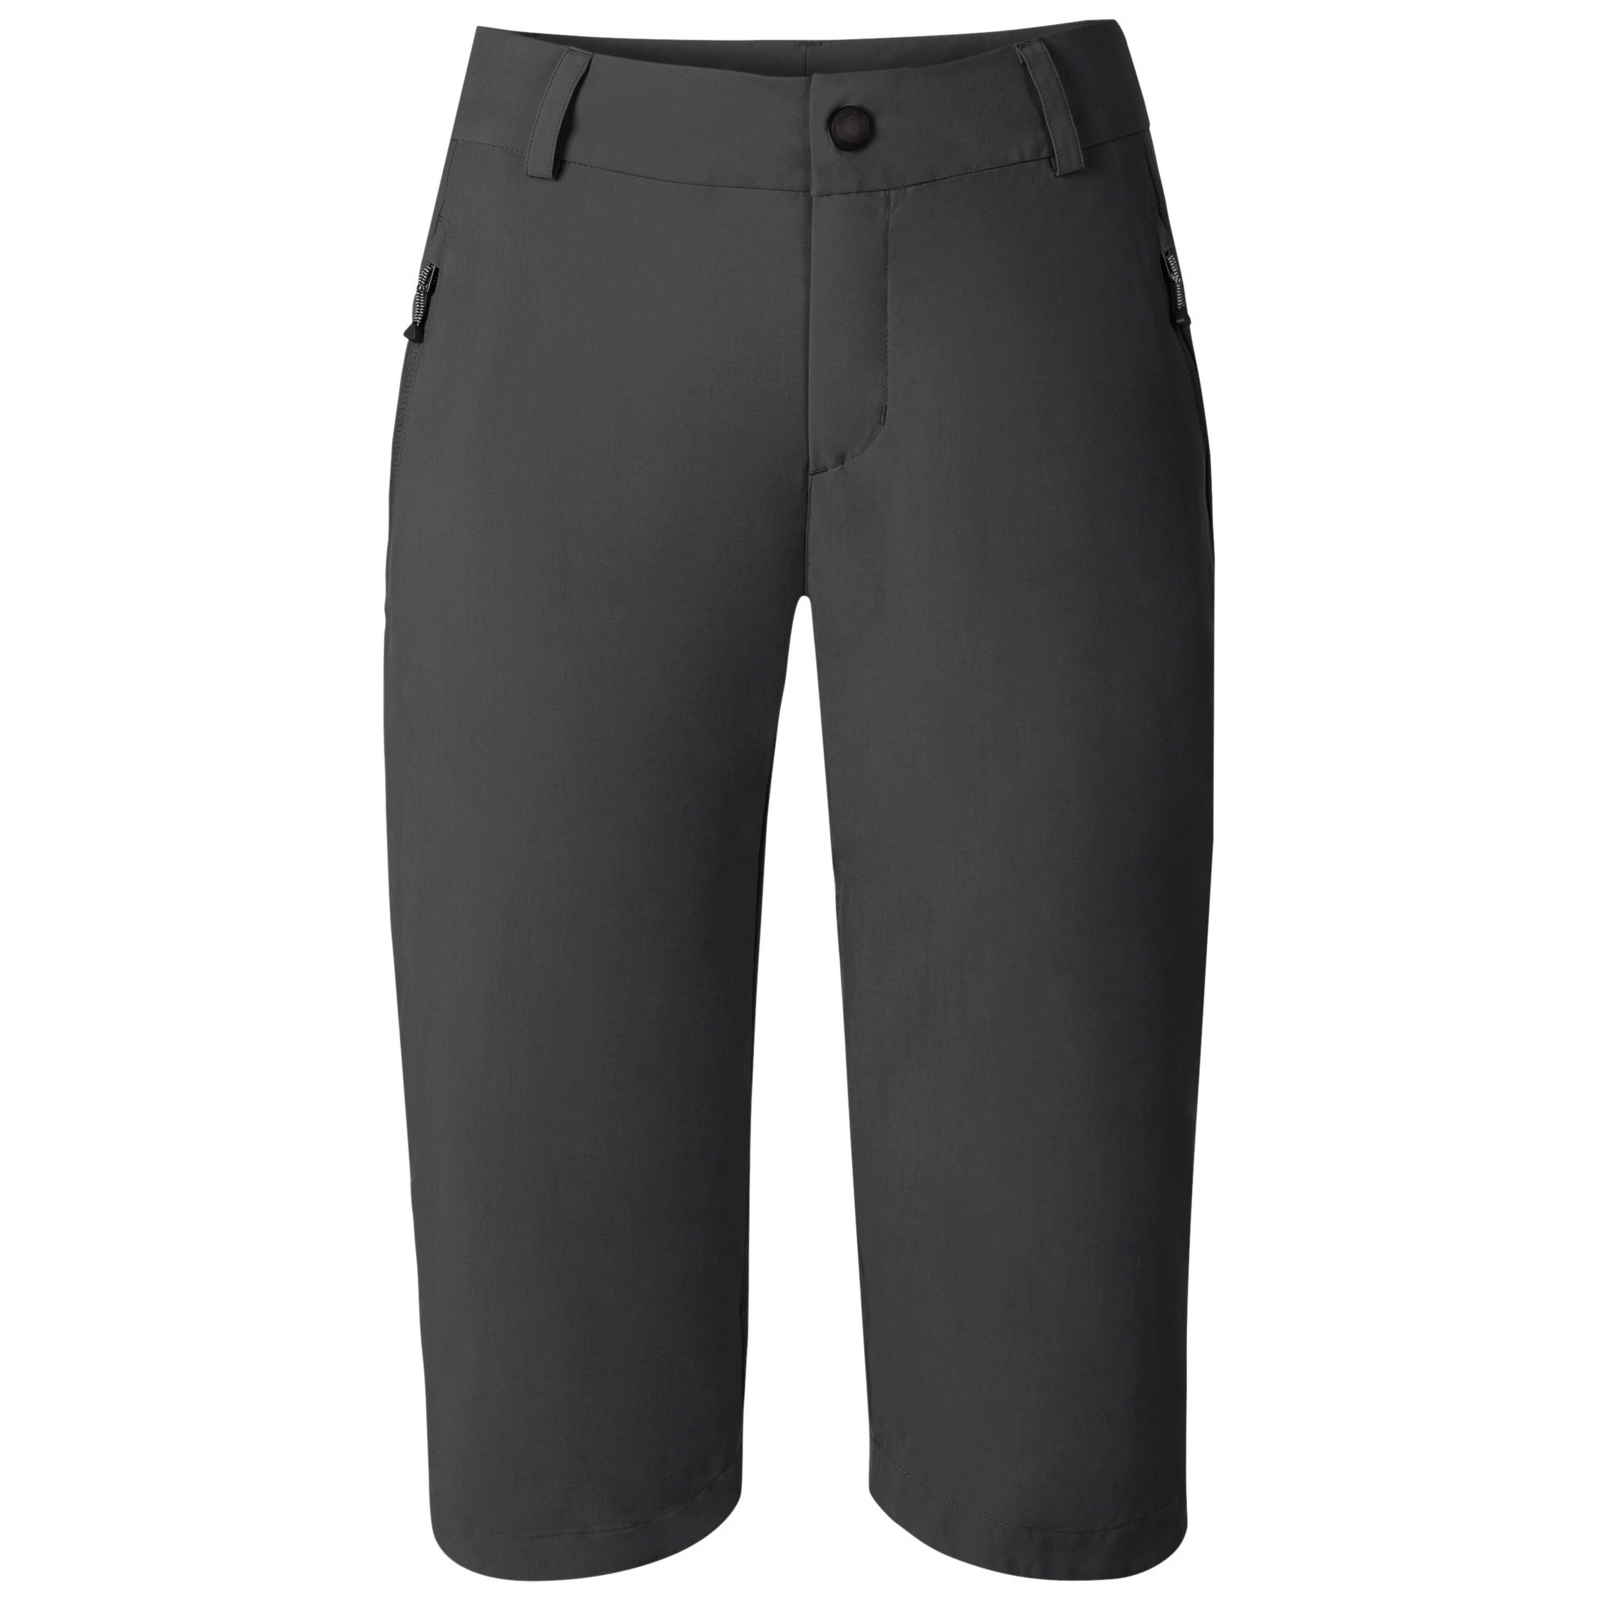 Odlo 3/4 Spoor Pants | Graphite Grey